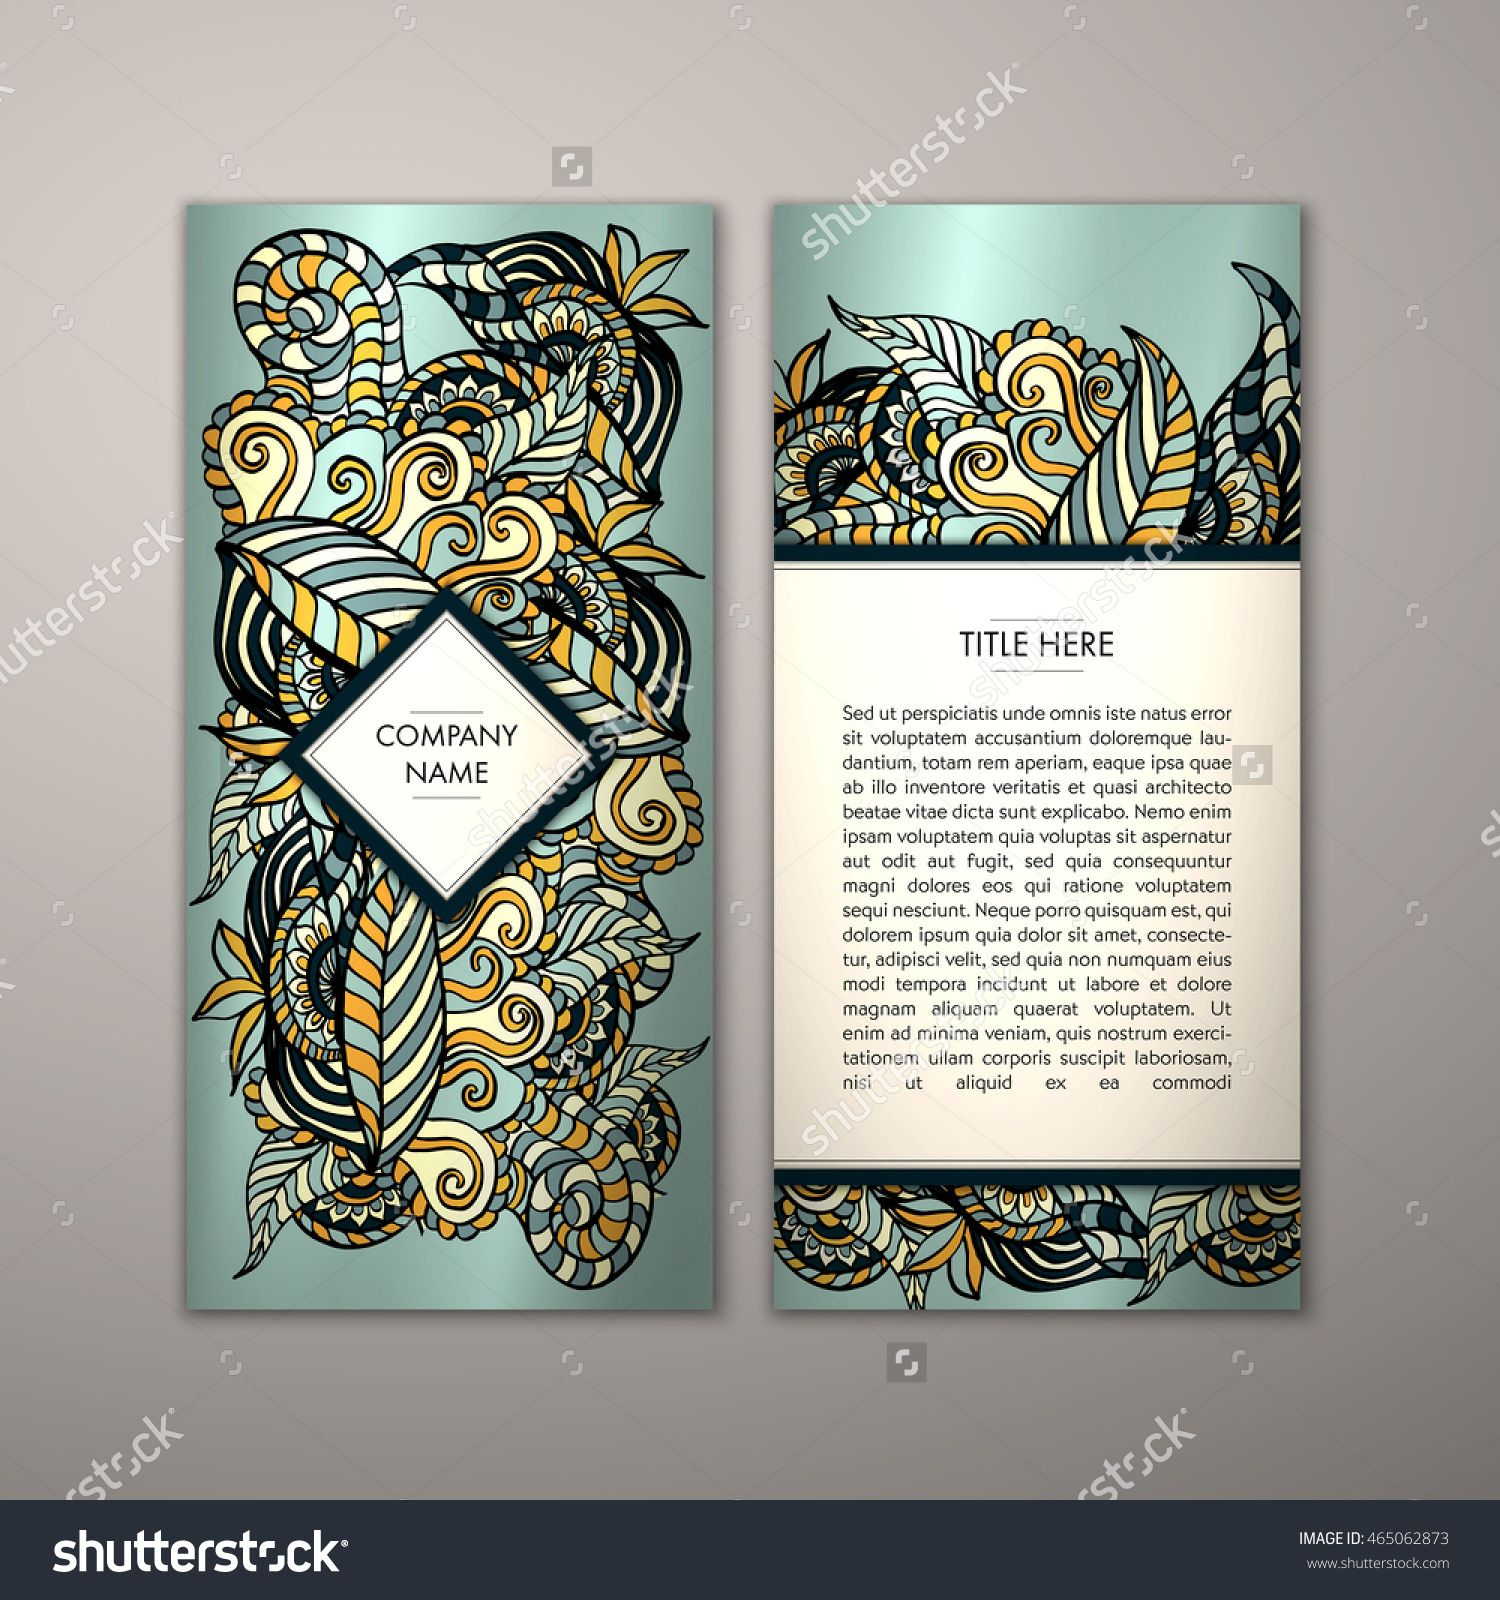 flyer template with abstract ornament pattern vector greeting card design front page and back page 465062873 shutterstock